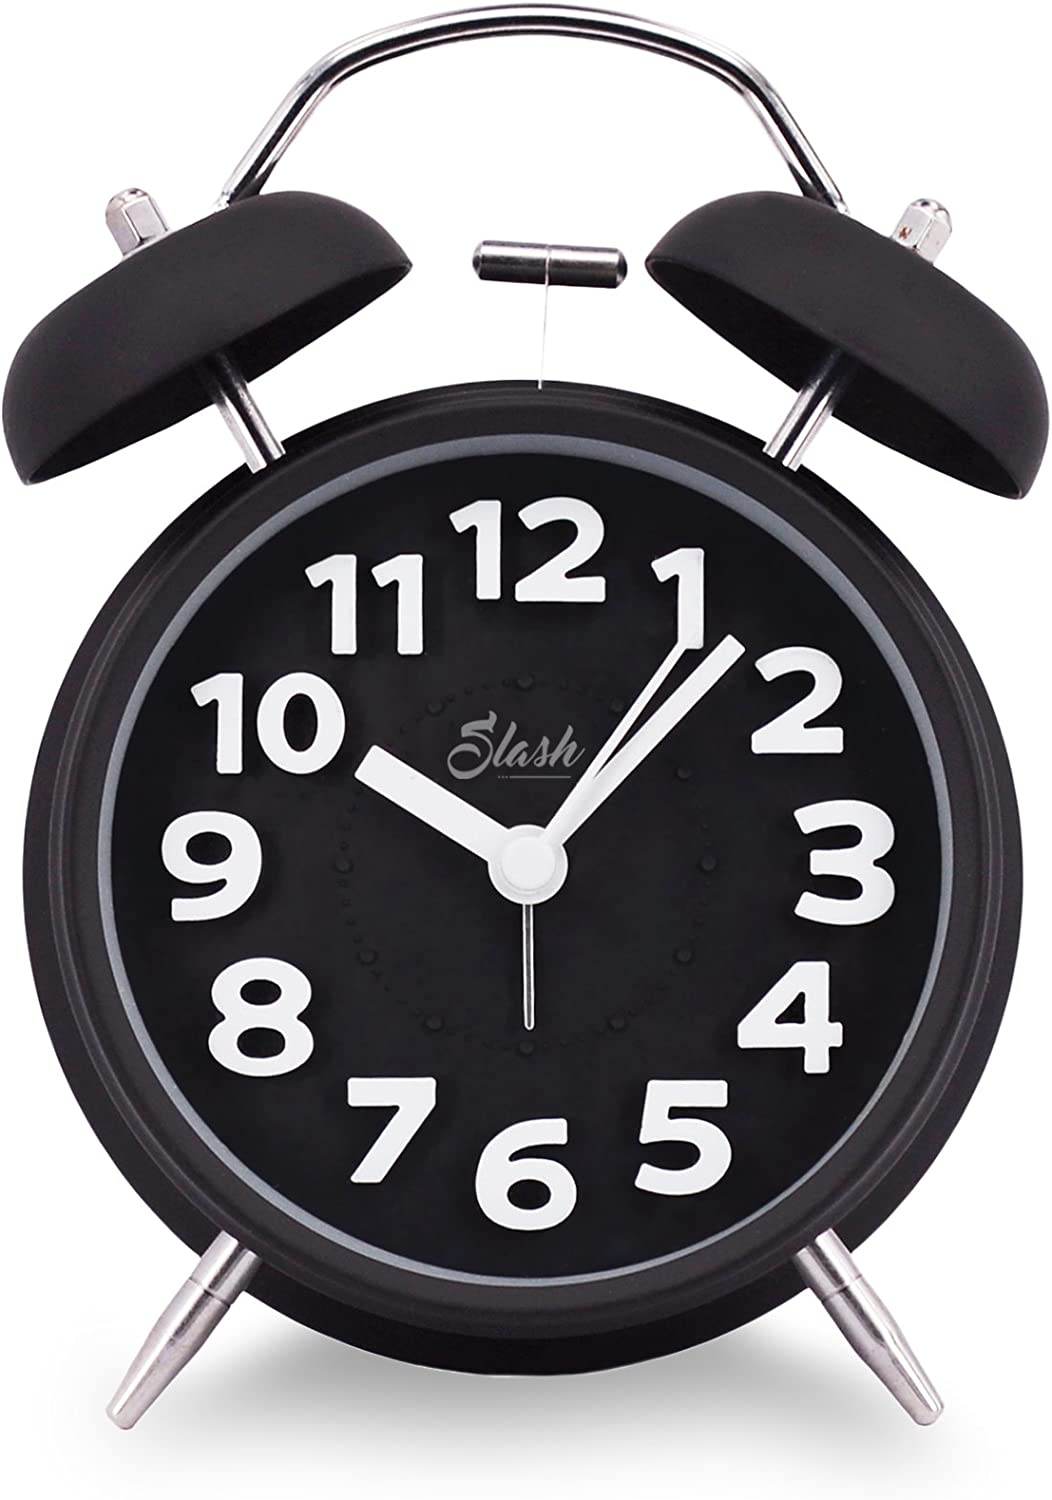 Vintage Retro Old Fashion Quiet Non-ticking Analog Alarm Clock Battery Operated